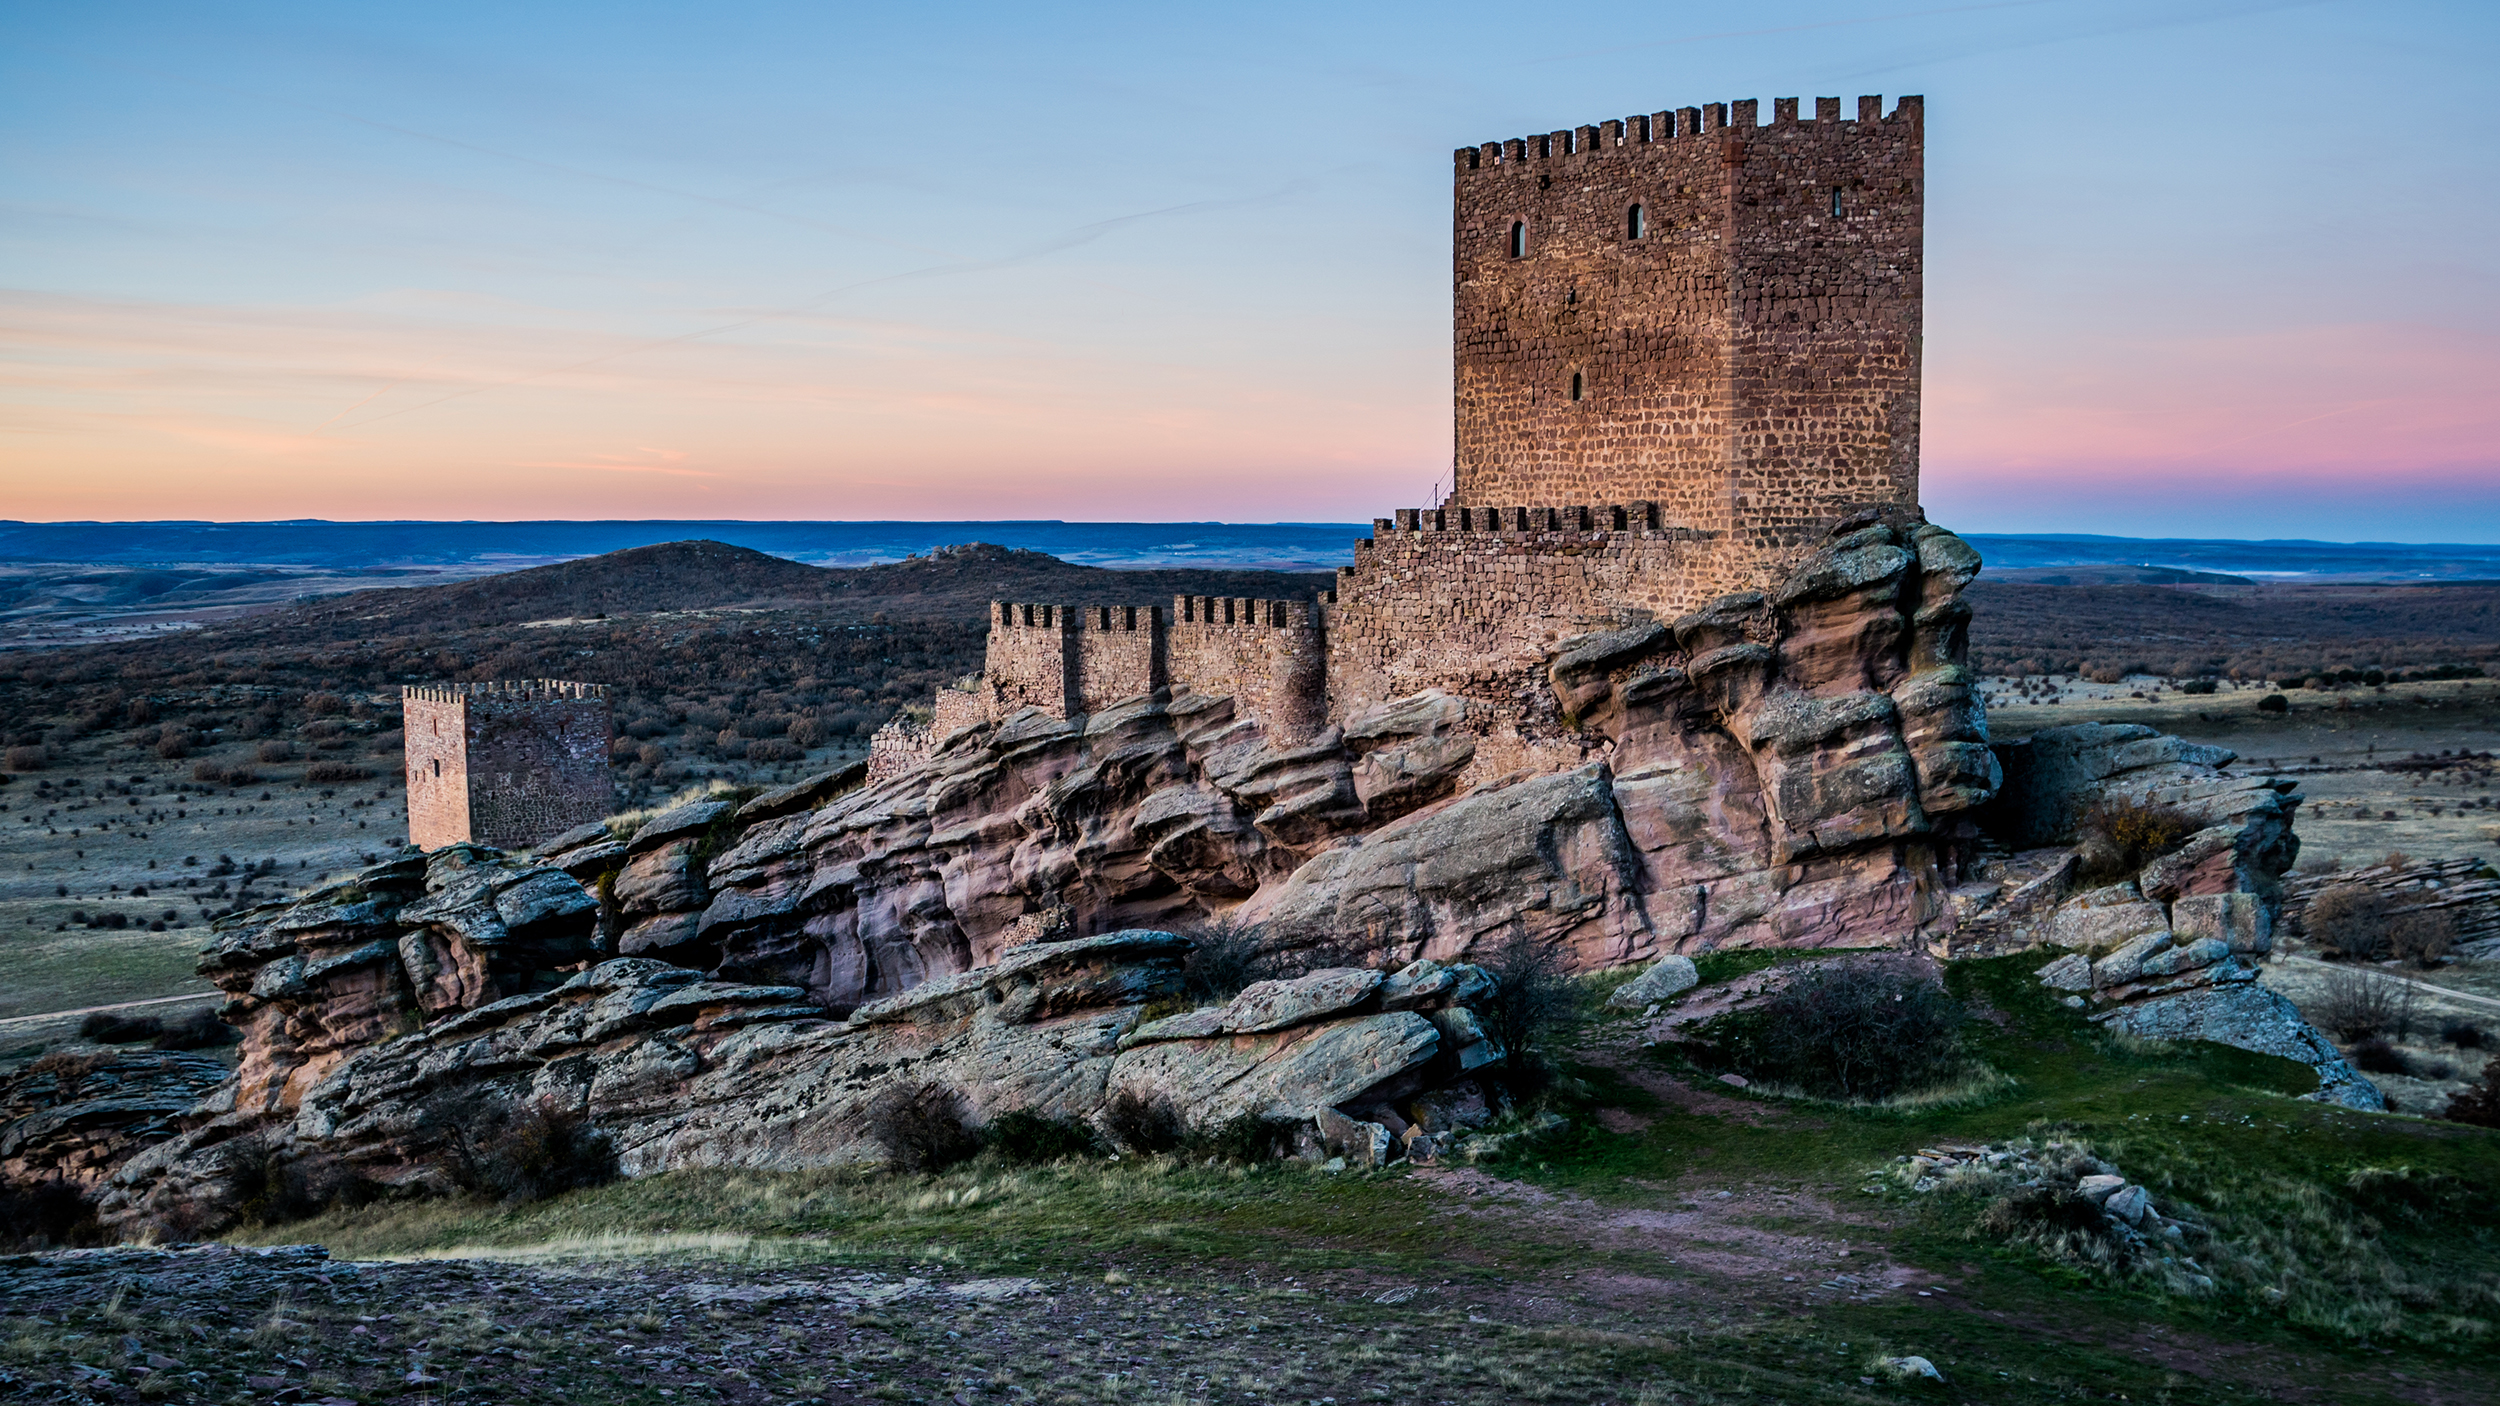 Game of Thrones' filming locations in Spain: Best places to